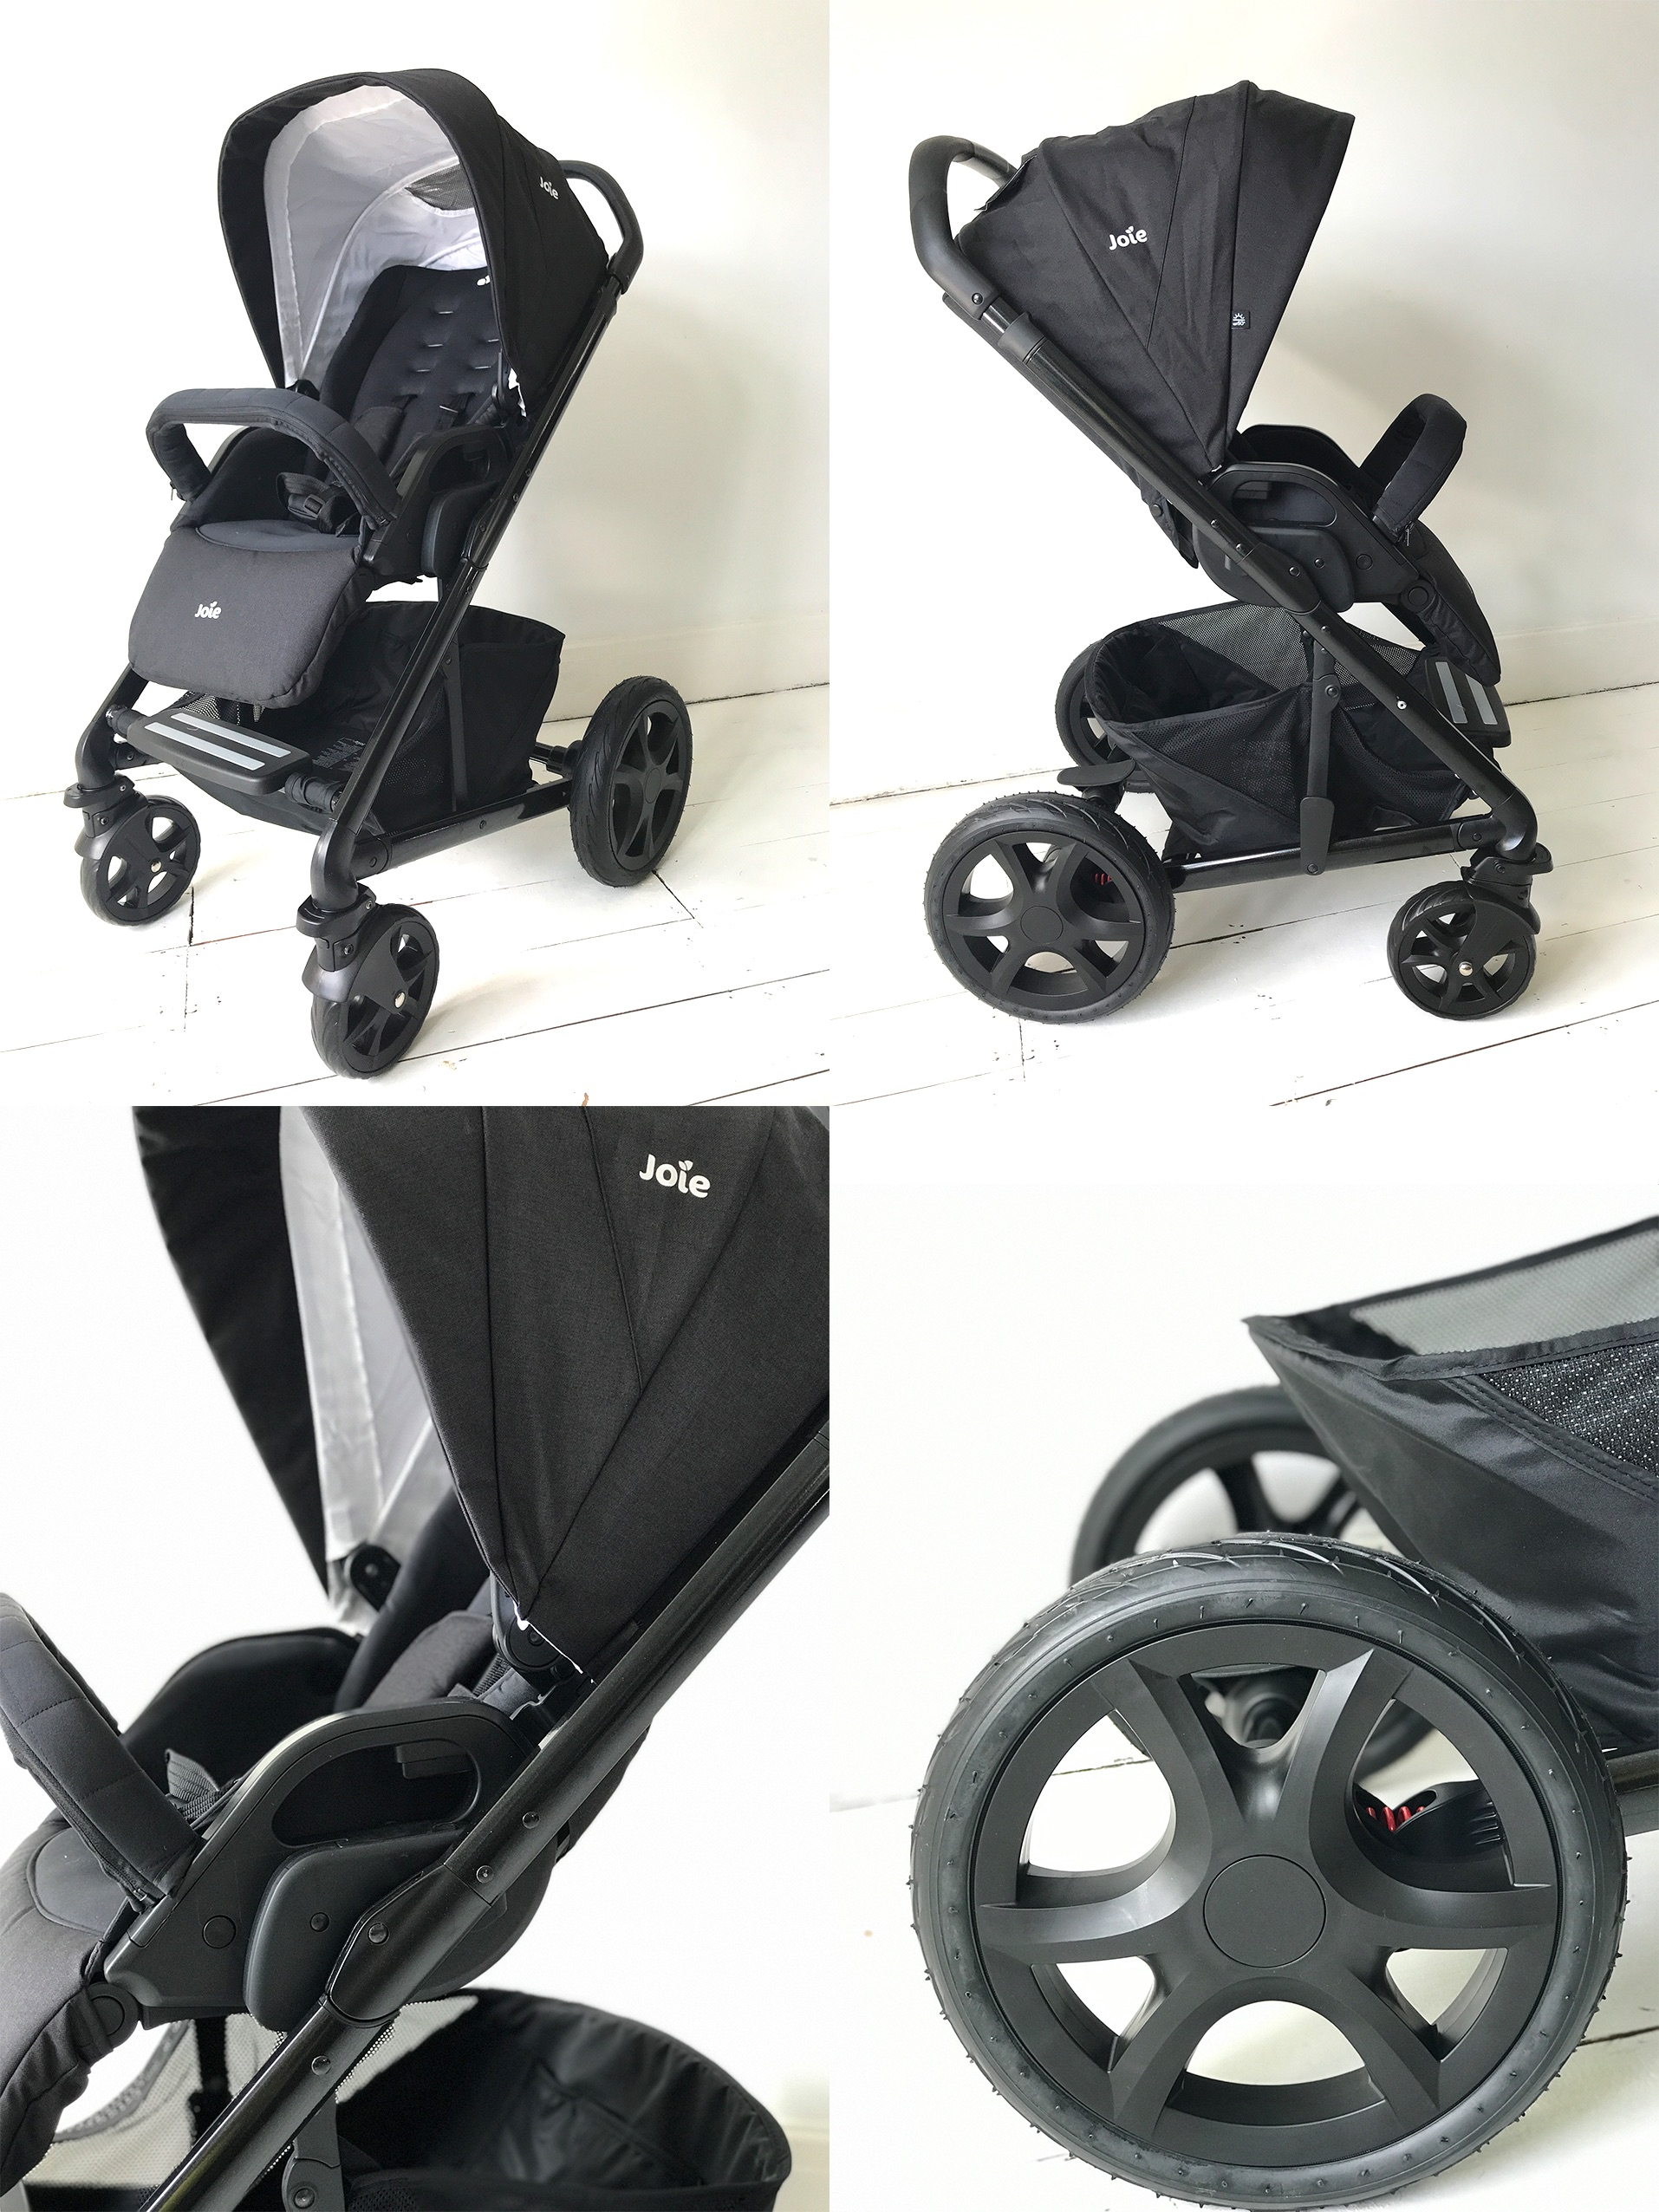 Dadsnet reviews 6 of the UK's best pushchairs in 2018, Joie Chrome DRX%, product-review%